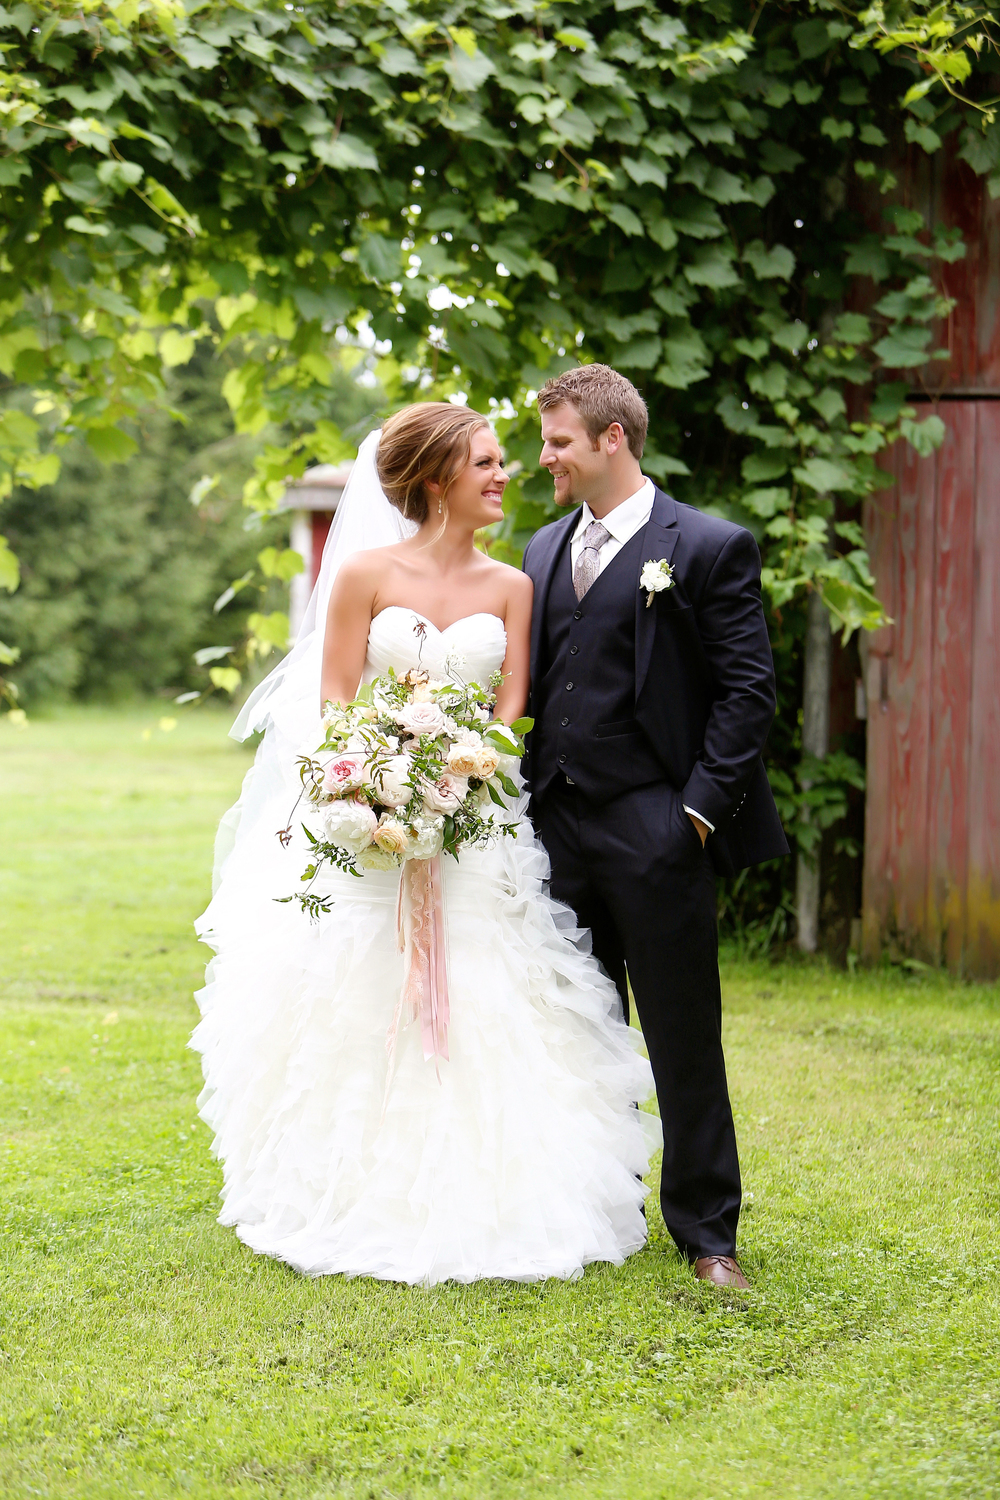 Michigan Barn Wedding Outdoor Bride and Groom Photos